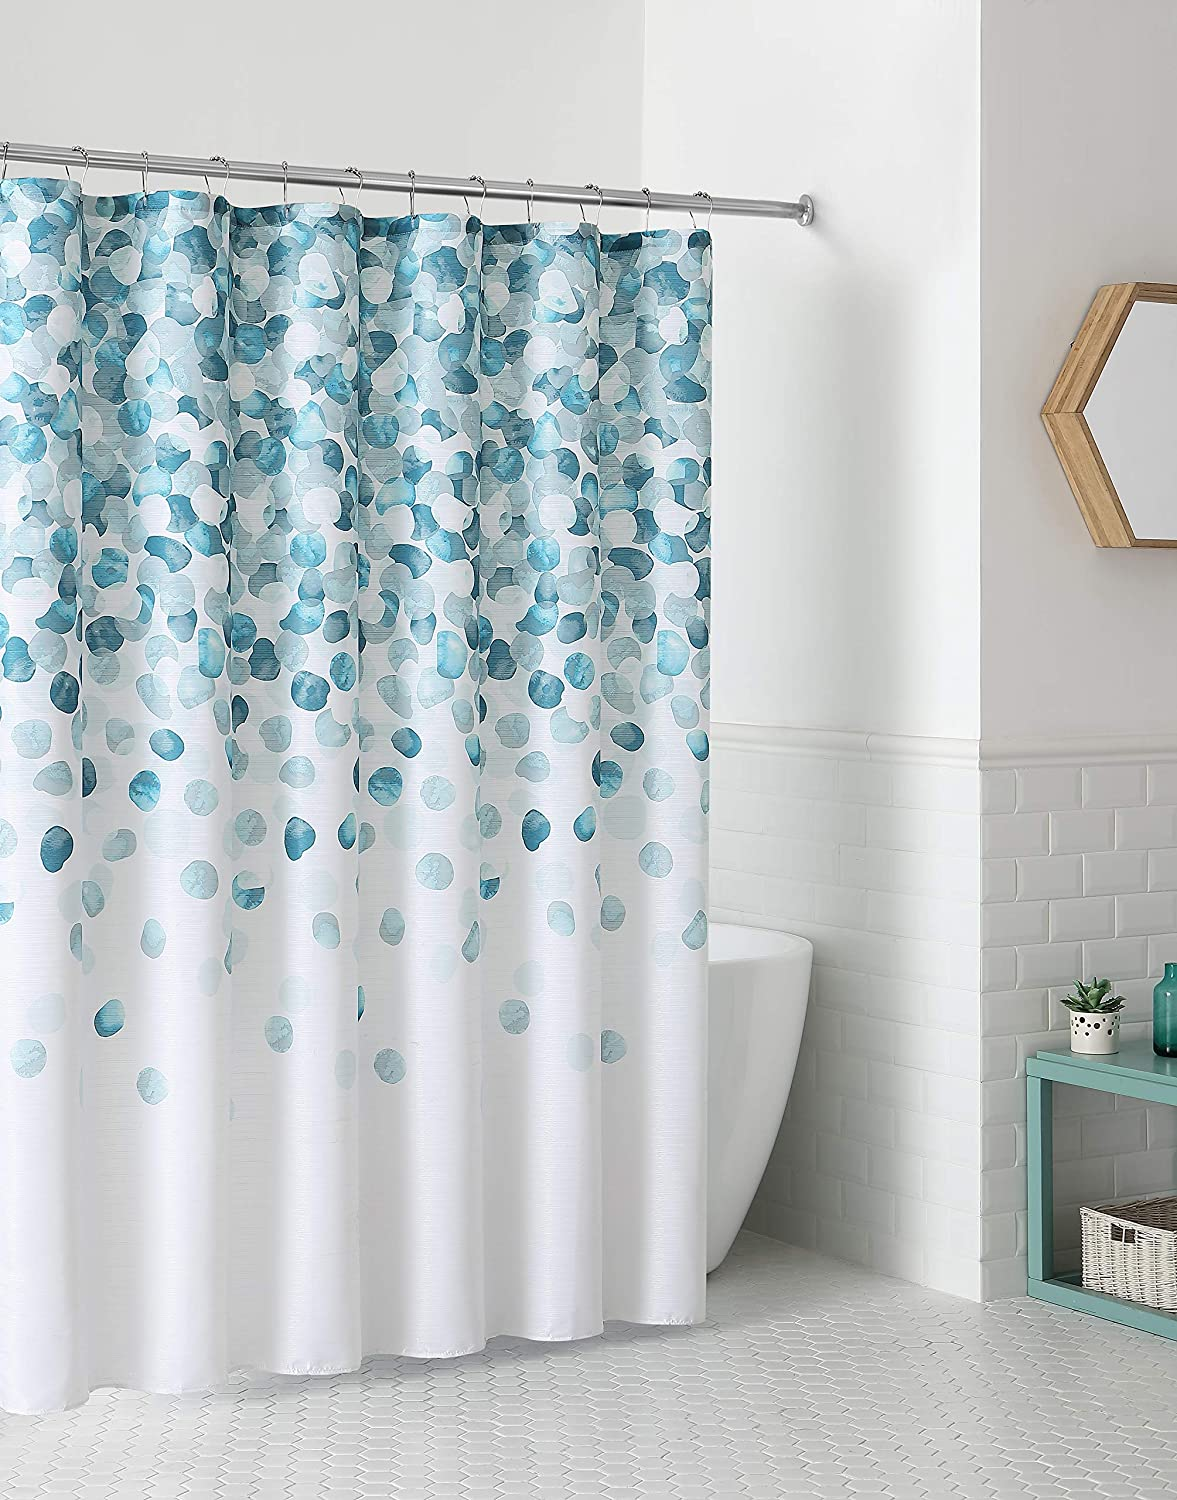 Vcny Modern Fabric Shower Curtain Geometric Cascading Pattern Of Blue Teal Turquoise Aqua And White Amazon Co Uk Kitchen Home